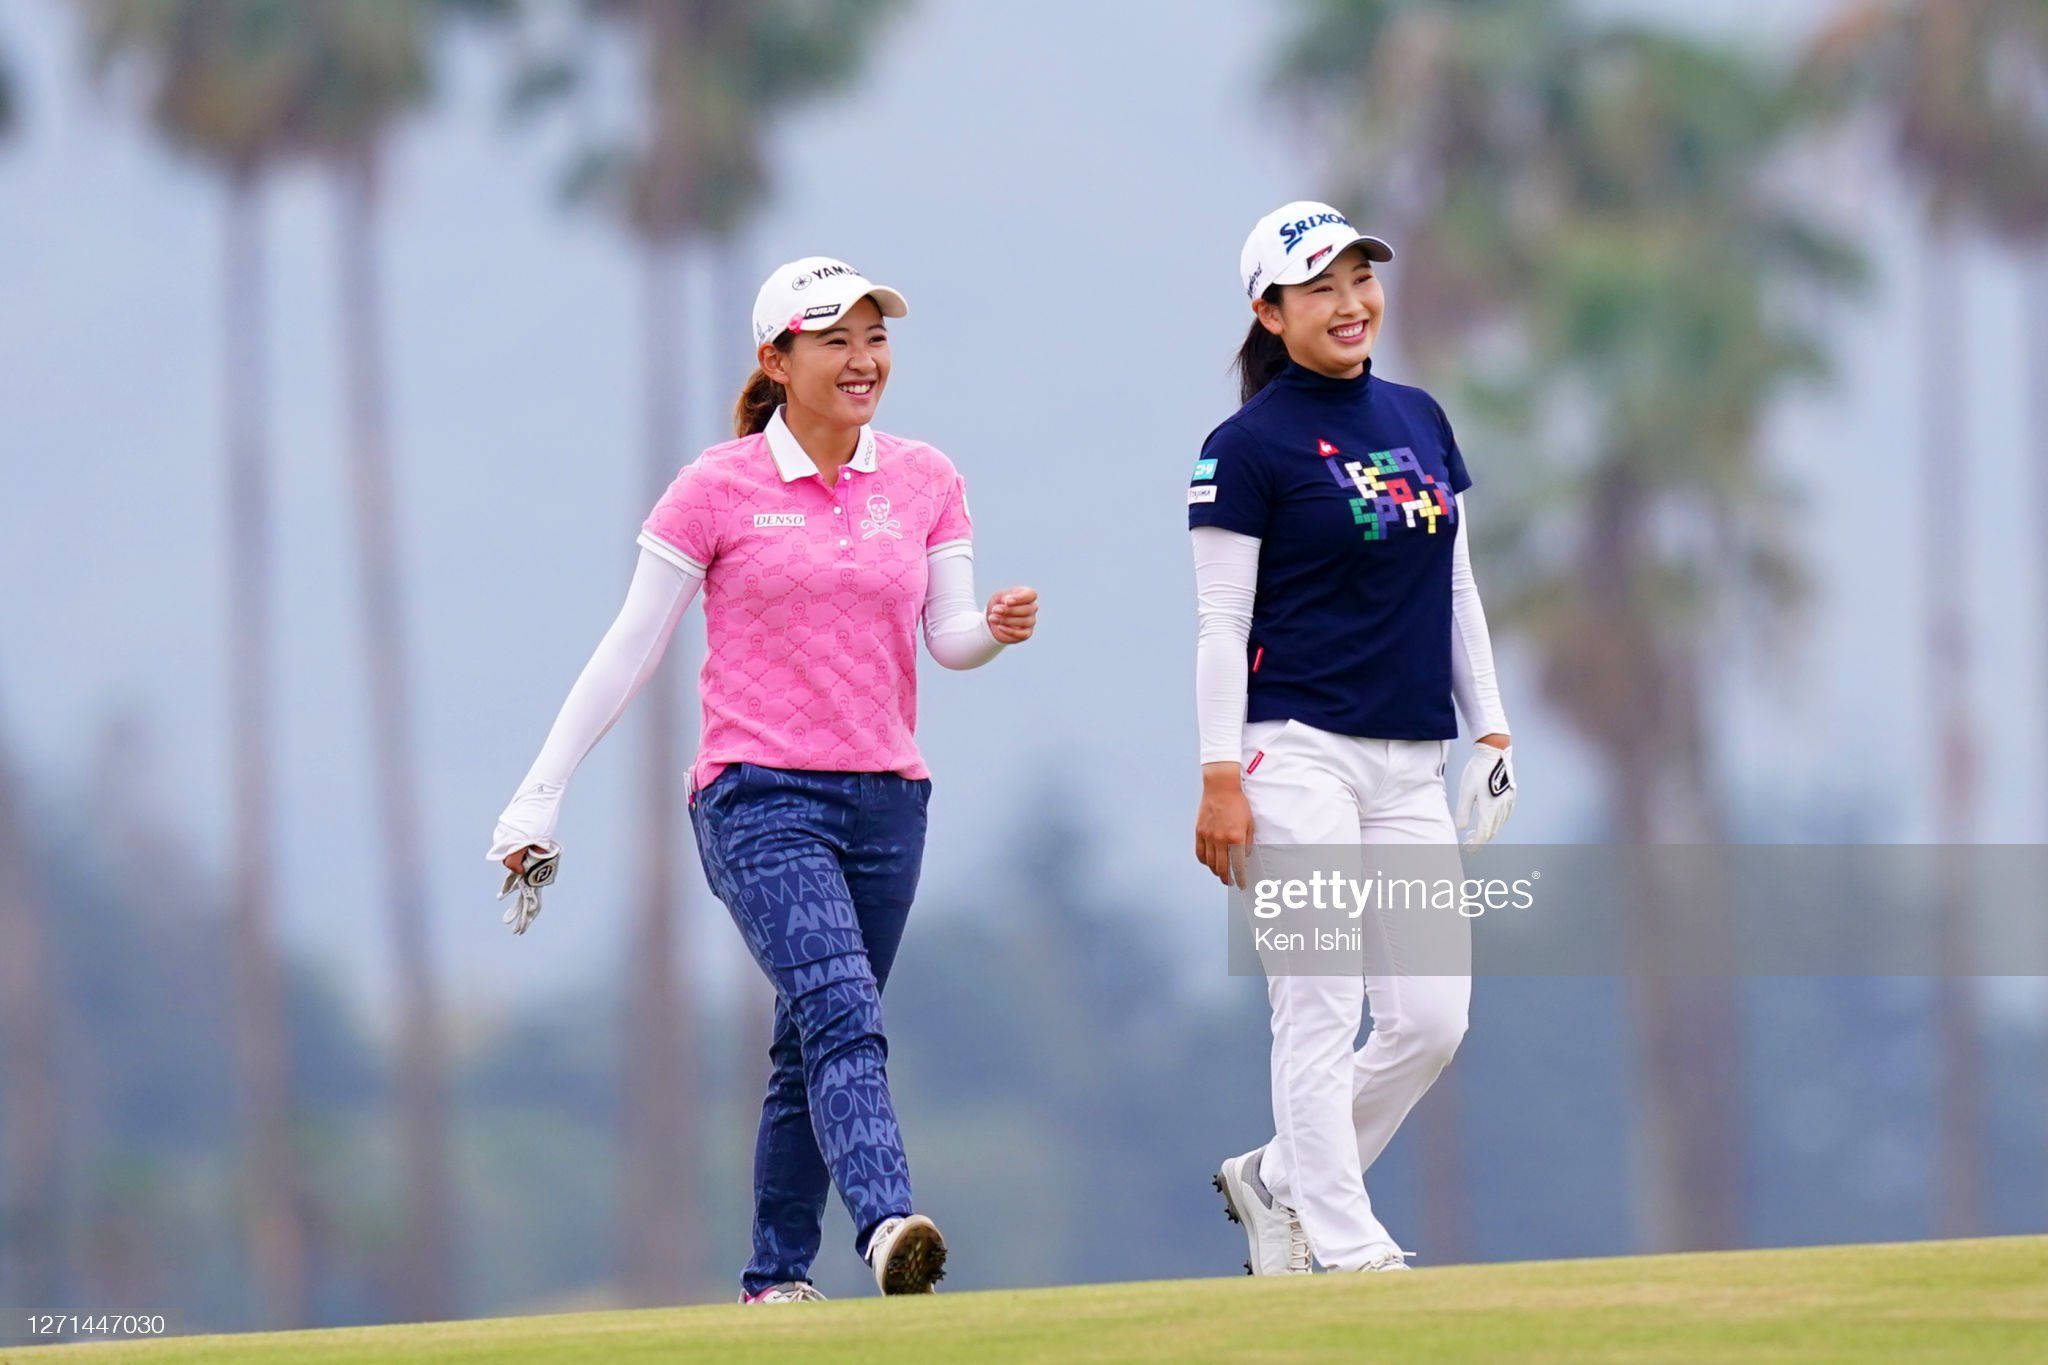 https://media.gettyimages.com/photos/kana-nagai-and-sakura-koiwai-of-japan-share-a-laugh-on-the-10th-hole-picture-id1271447030?s=2048x2048